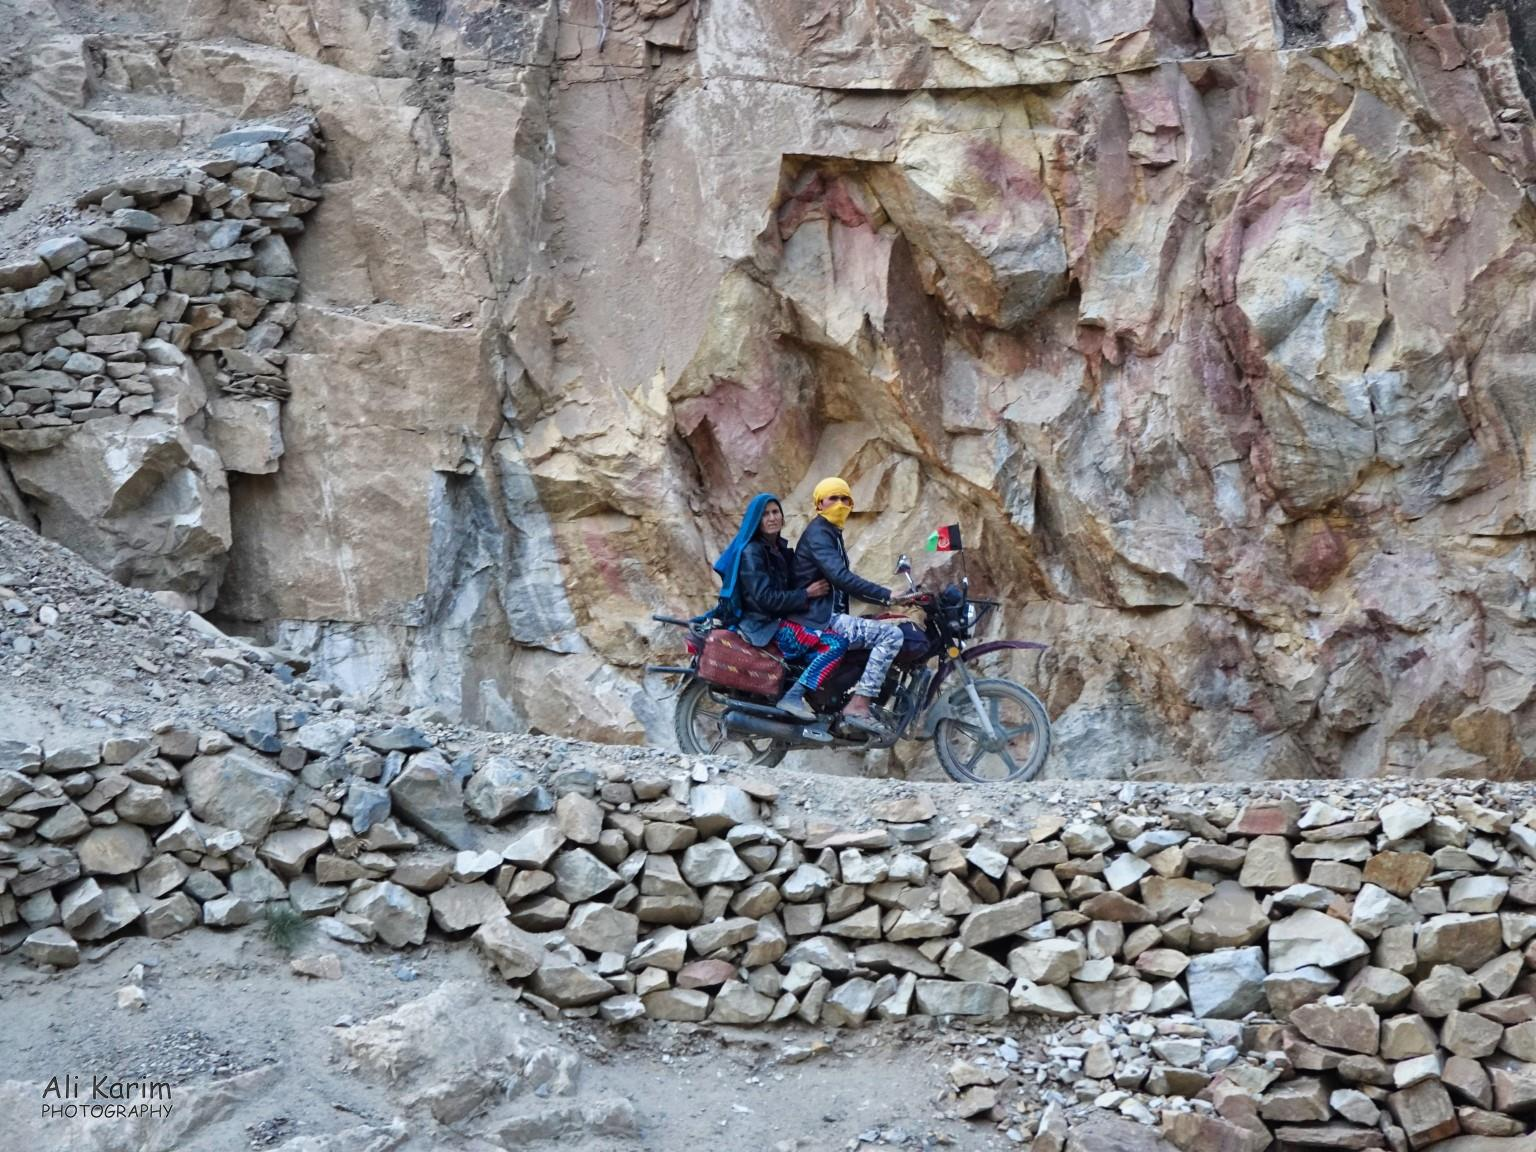 Dushanbe, Tajikistan Riders on the Afghan side, checking us out. The drop to the Panj river was very steep here.